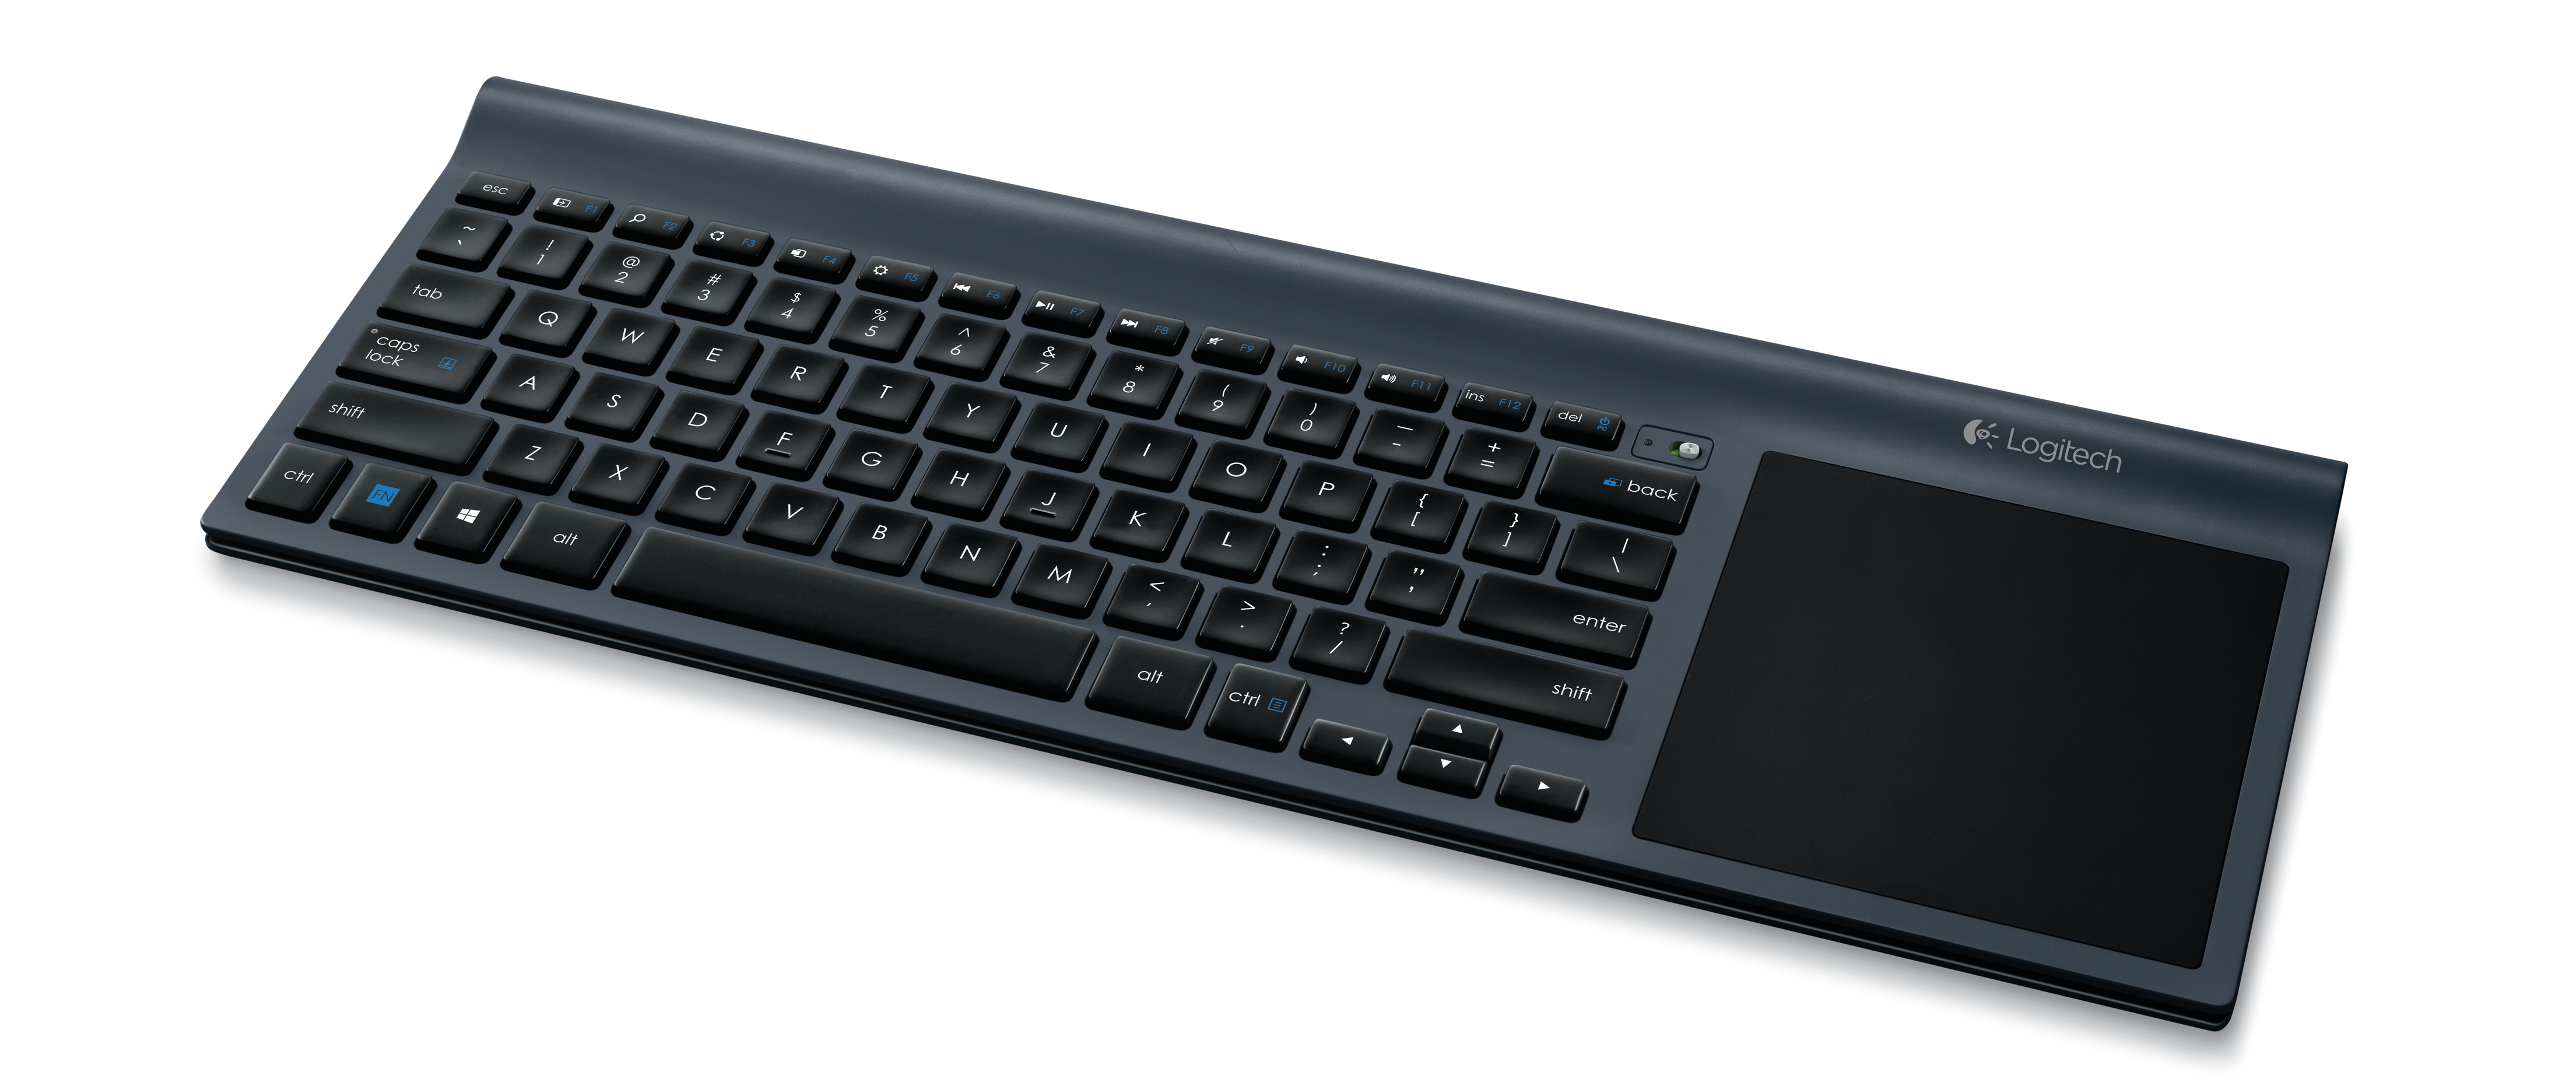 Logitech Wireless All-in-One Keyboard TK820 Streamlines Navigation with Large Built-in Touchpad ...